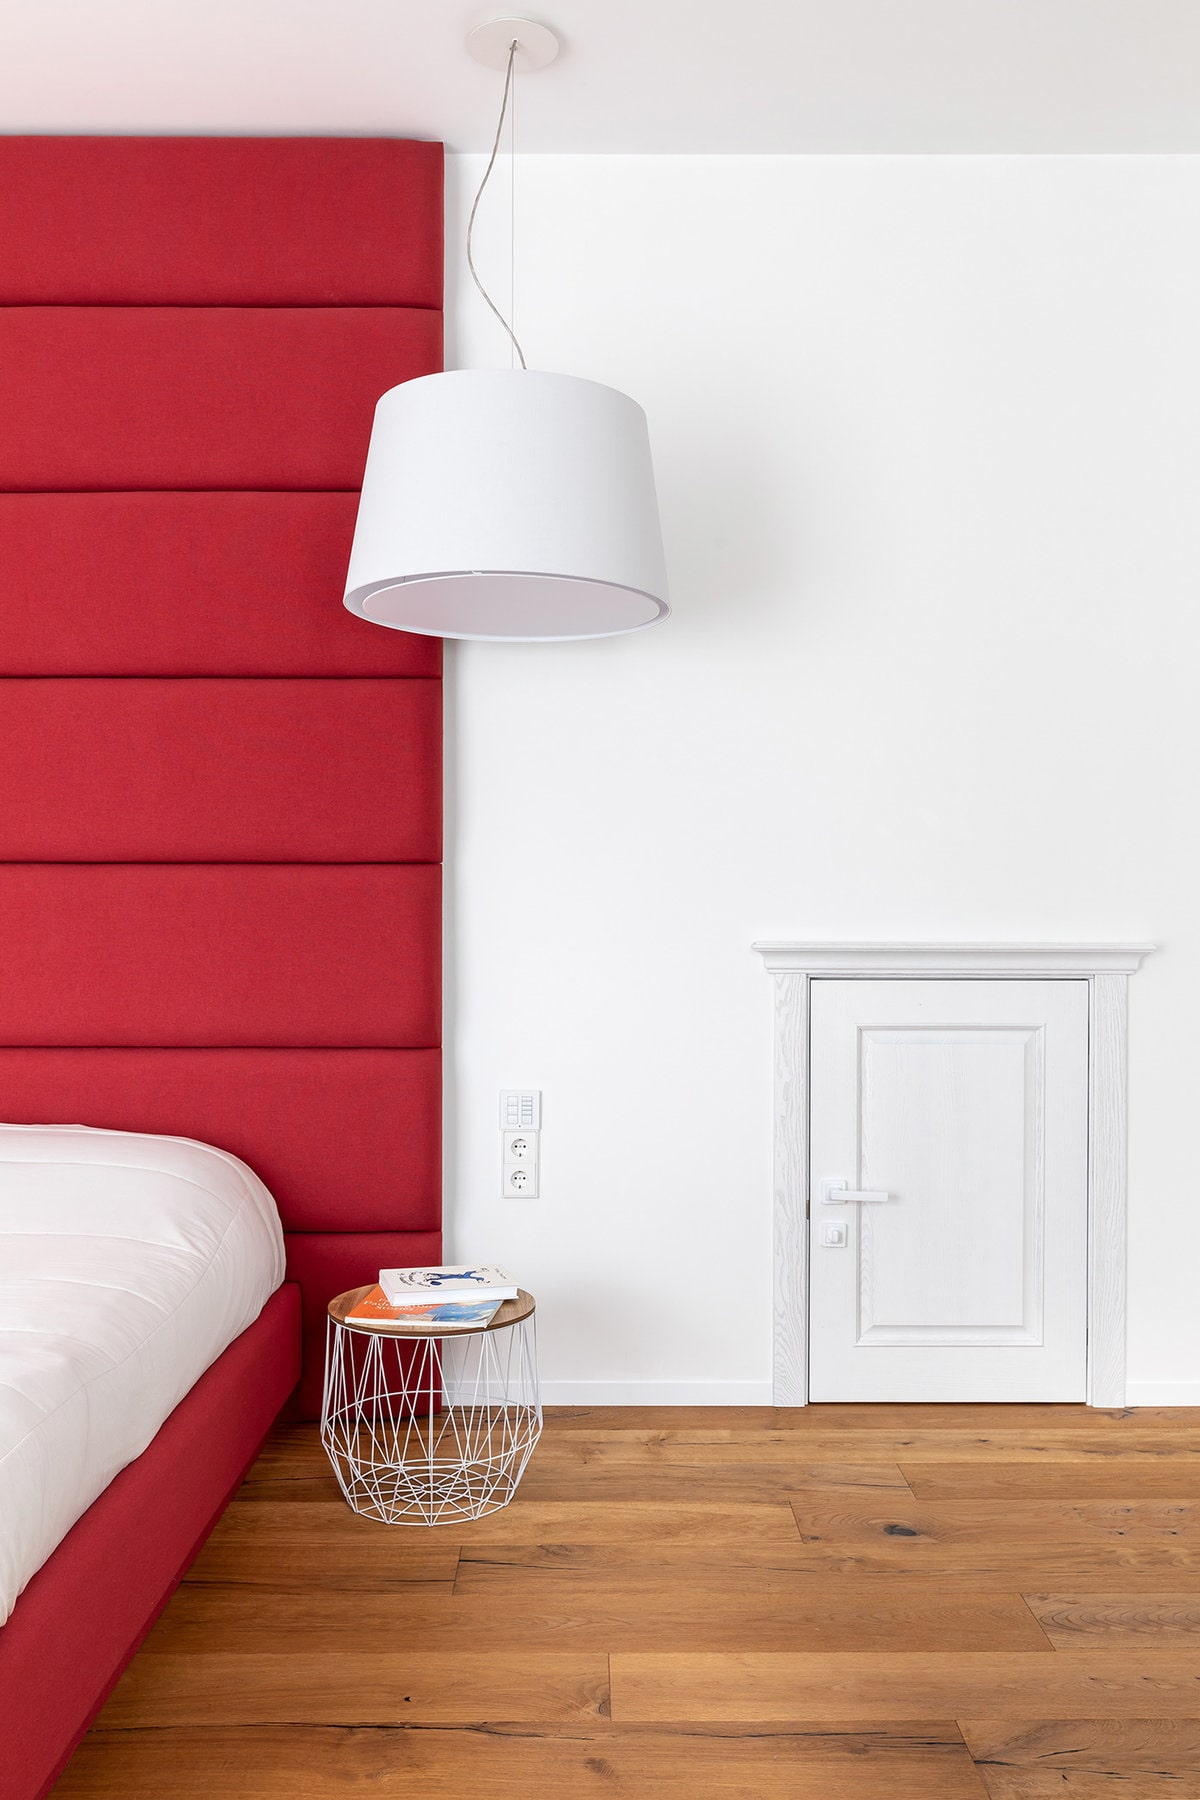 A close look at the bed shows the large red cushioned headboard and a small round bedside table topped with a large white pendant light.